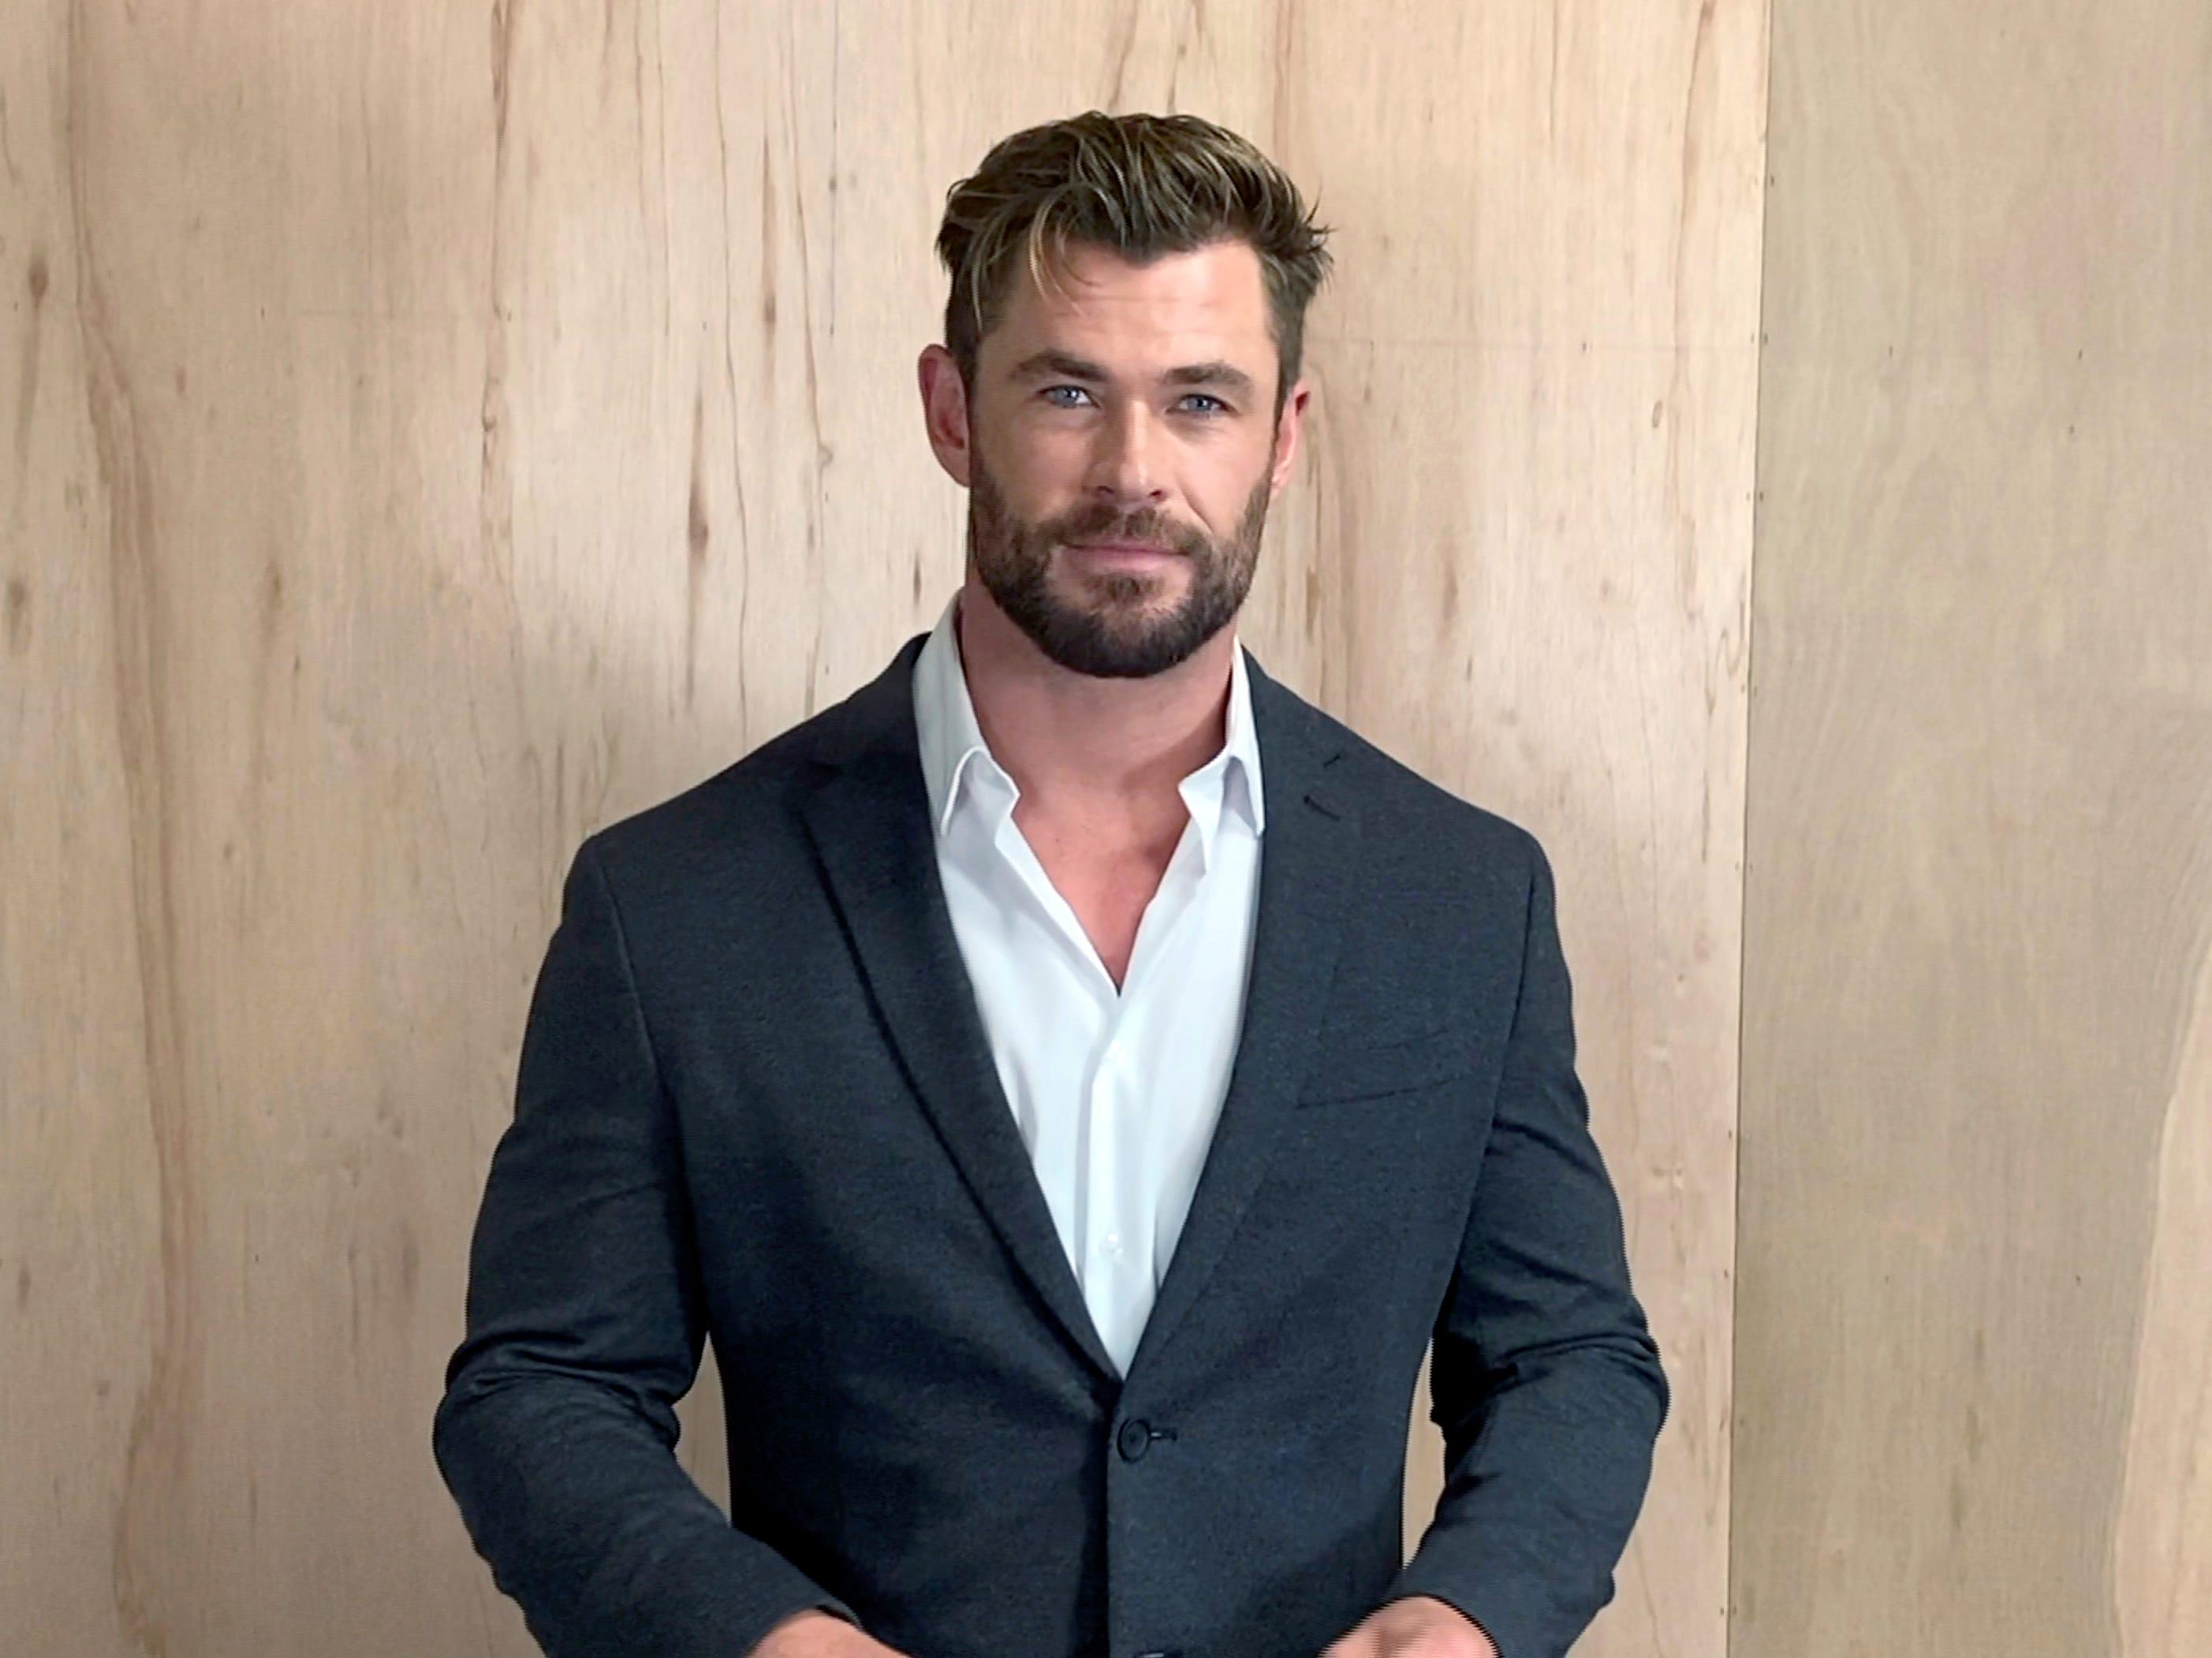 Chris Hemsworth posted a photo of his enormous arms - but people are just  commenting on his skinny legs